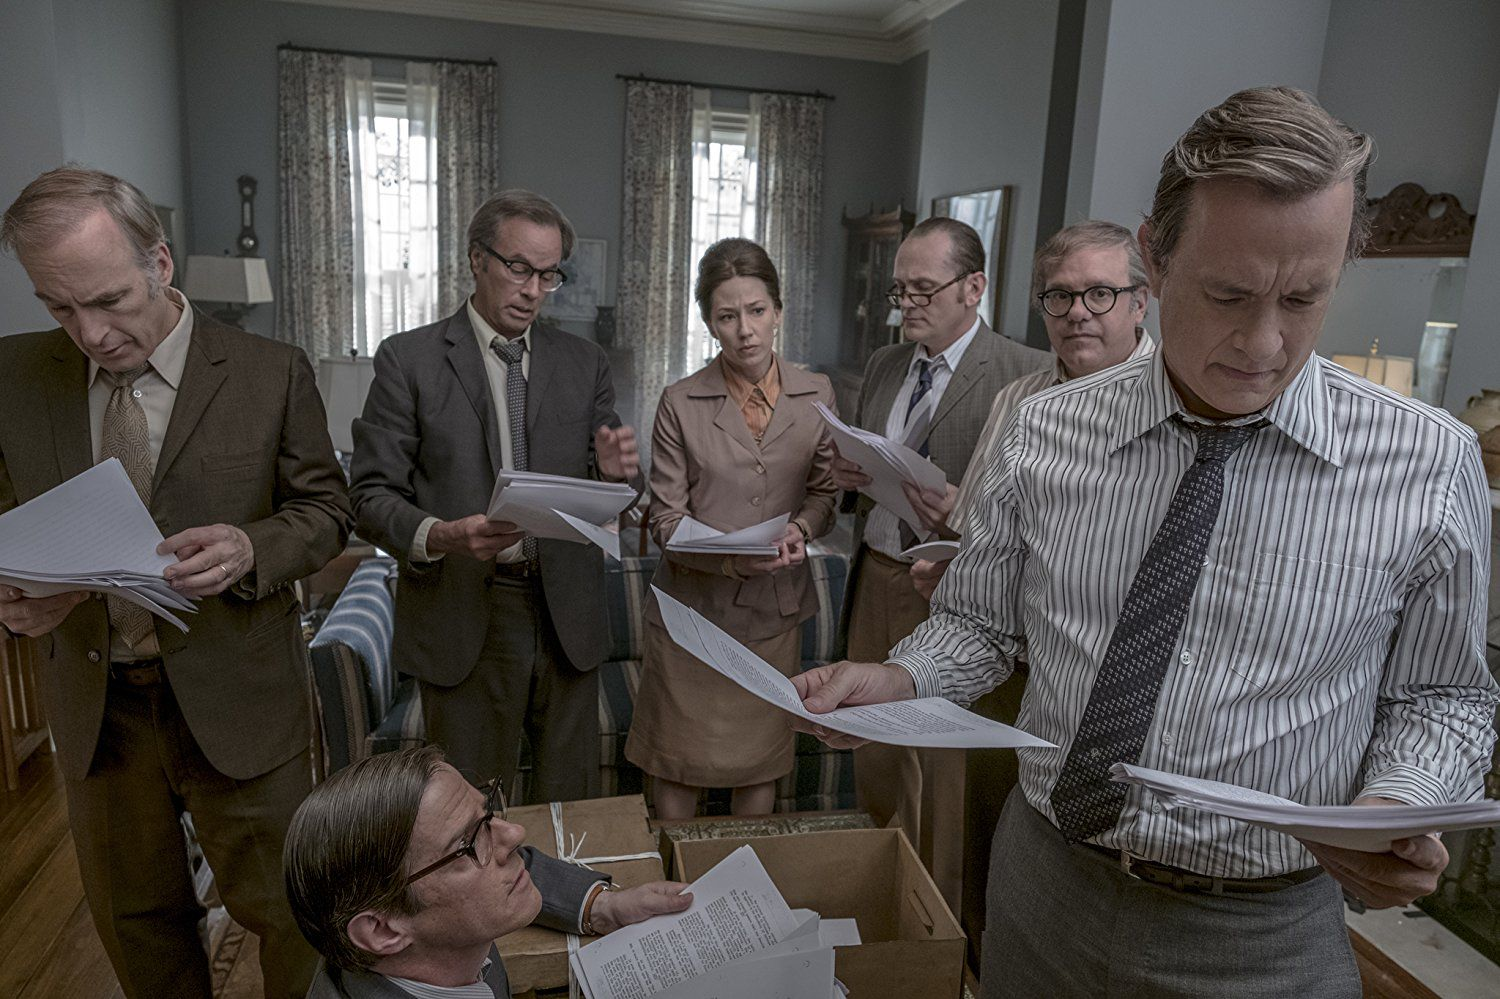 'The Post' balances modern political commentary with an examination of gender roles in the workforce of the 1970s.